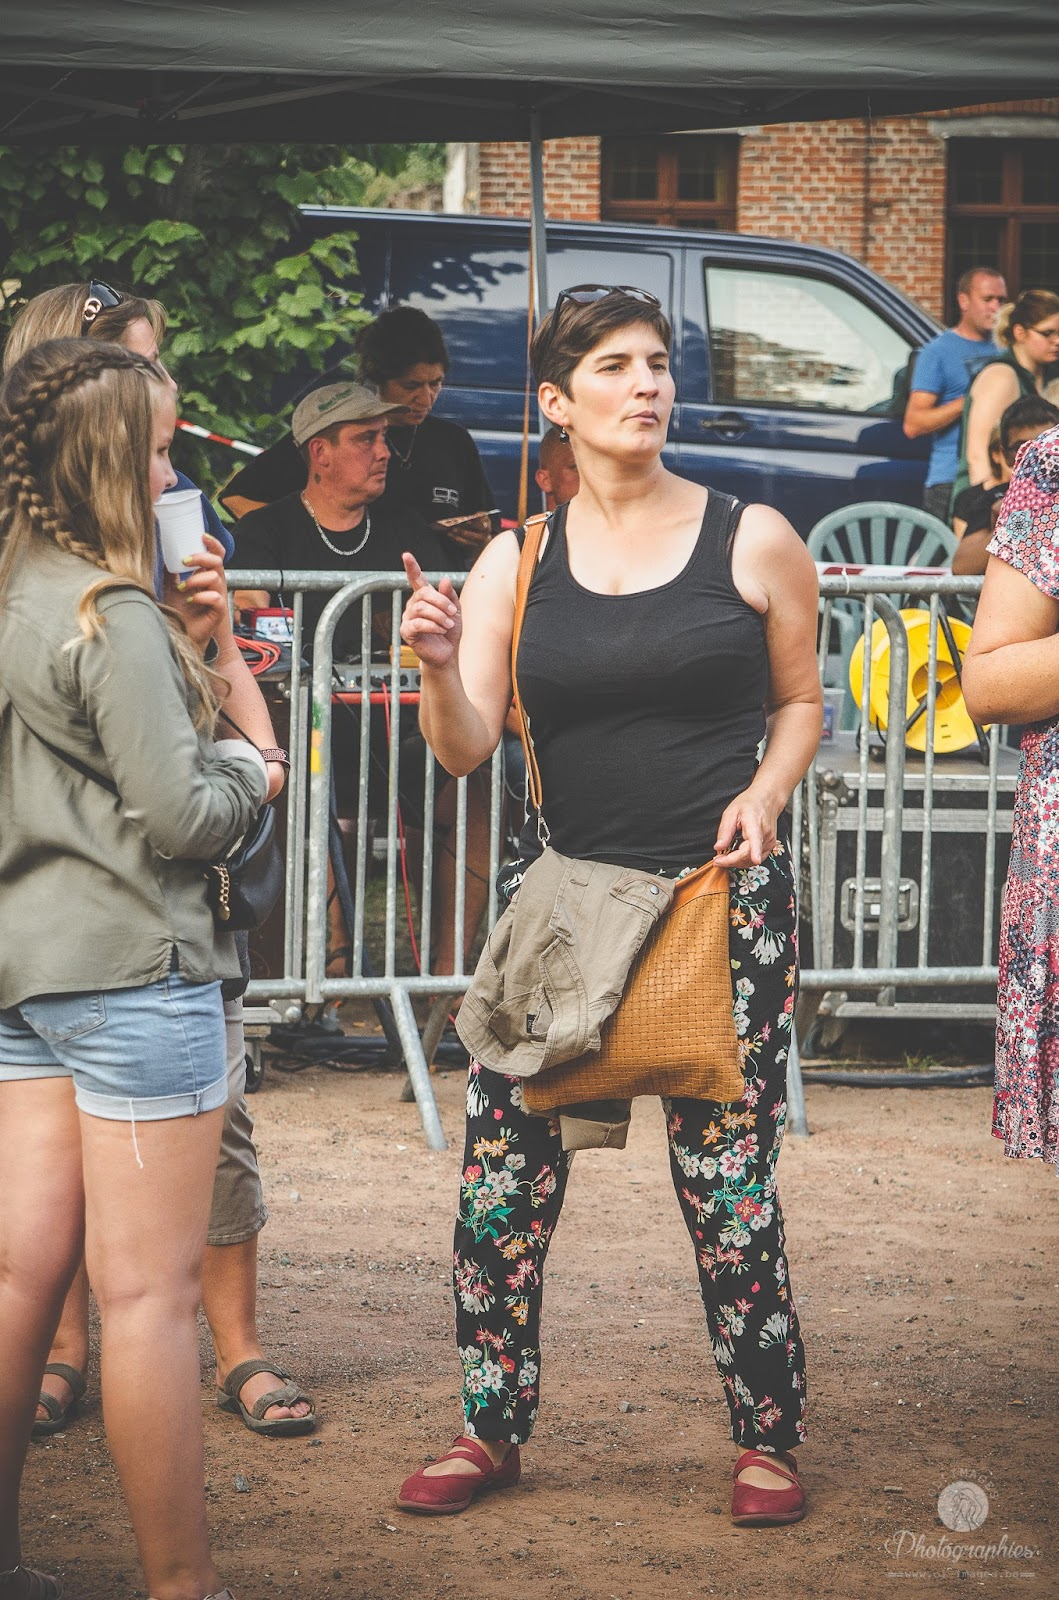 VillePomRock2017_26082017_OL-Images.be--42.jpg